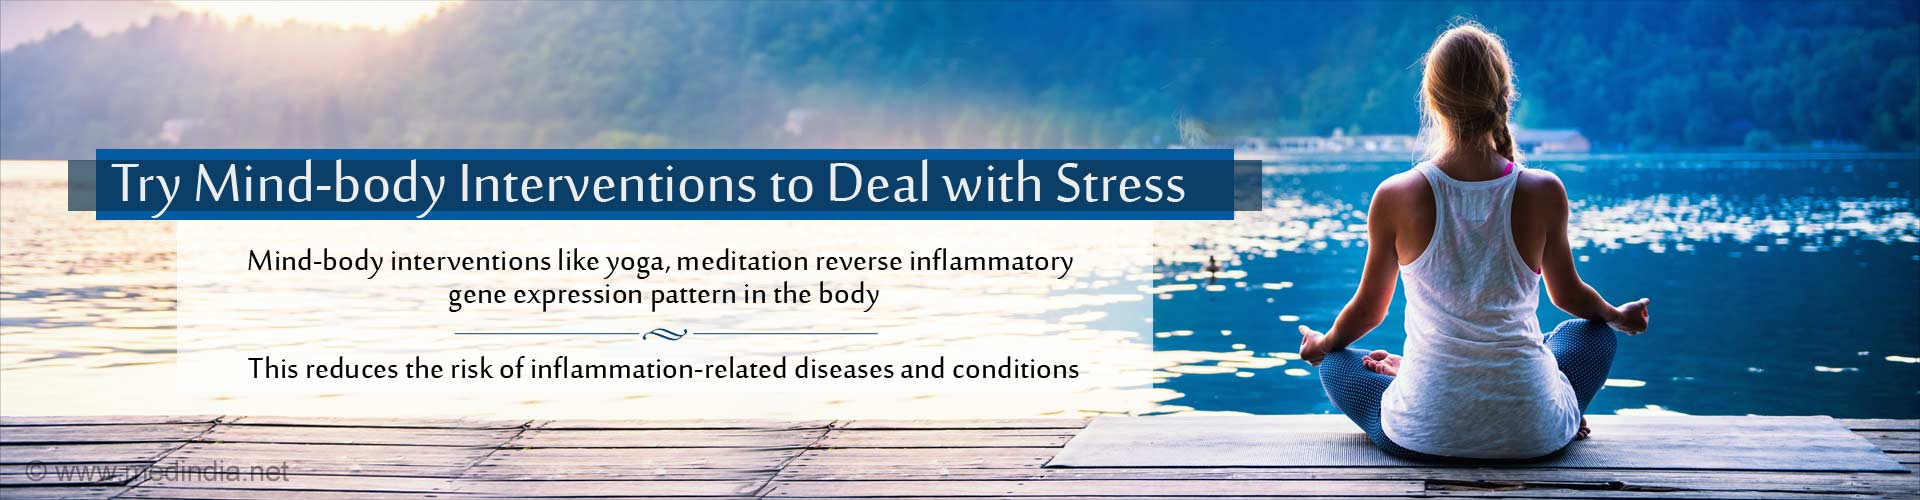 A Sound Mind in a Sound Body: Practice Yoga, Meditation to '˜Reverse' Genetic Effects of Stress